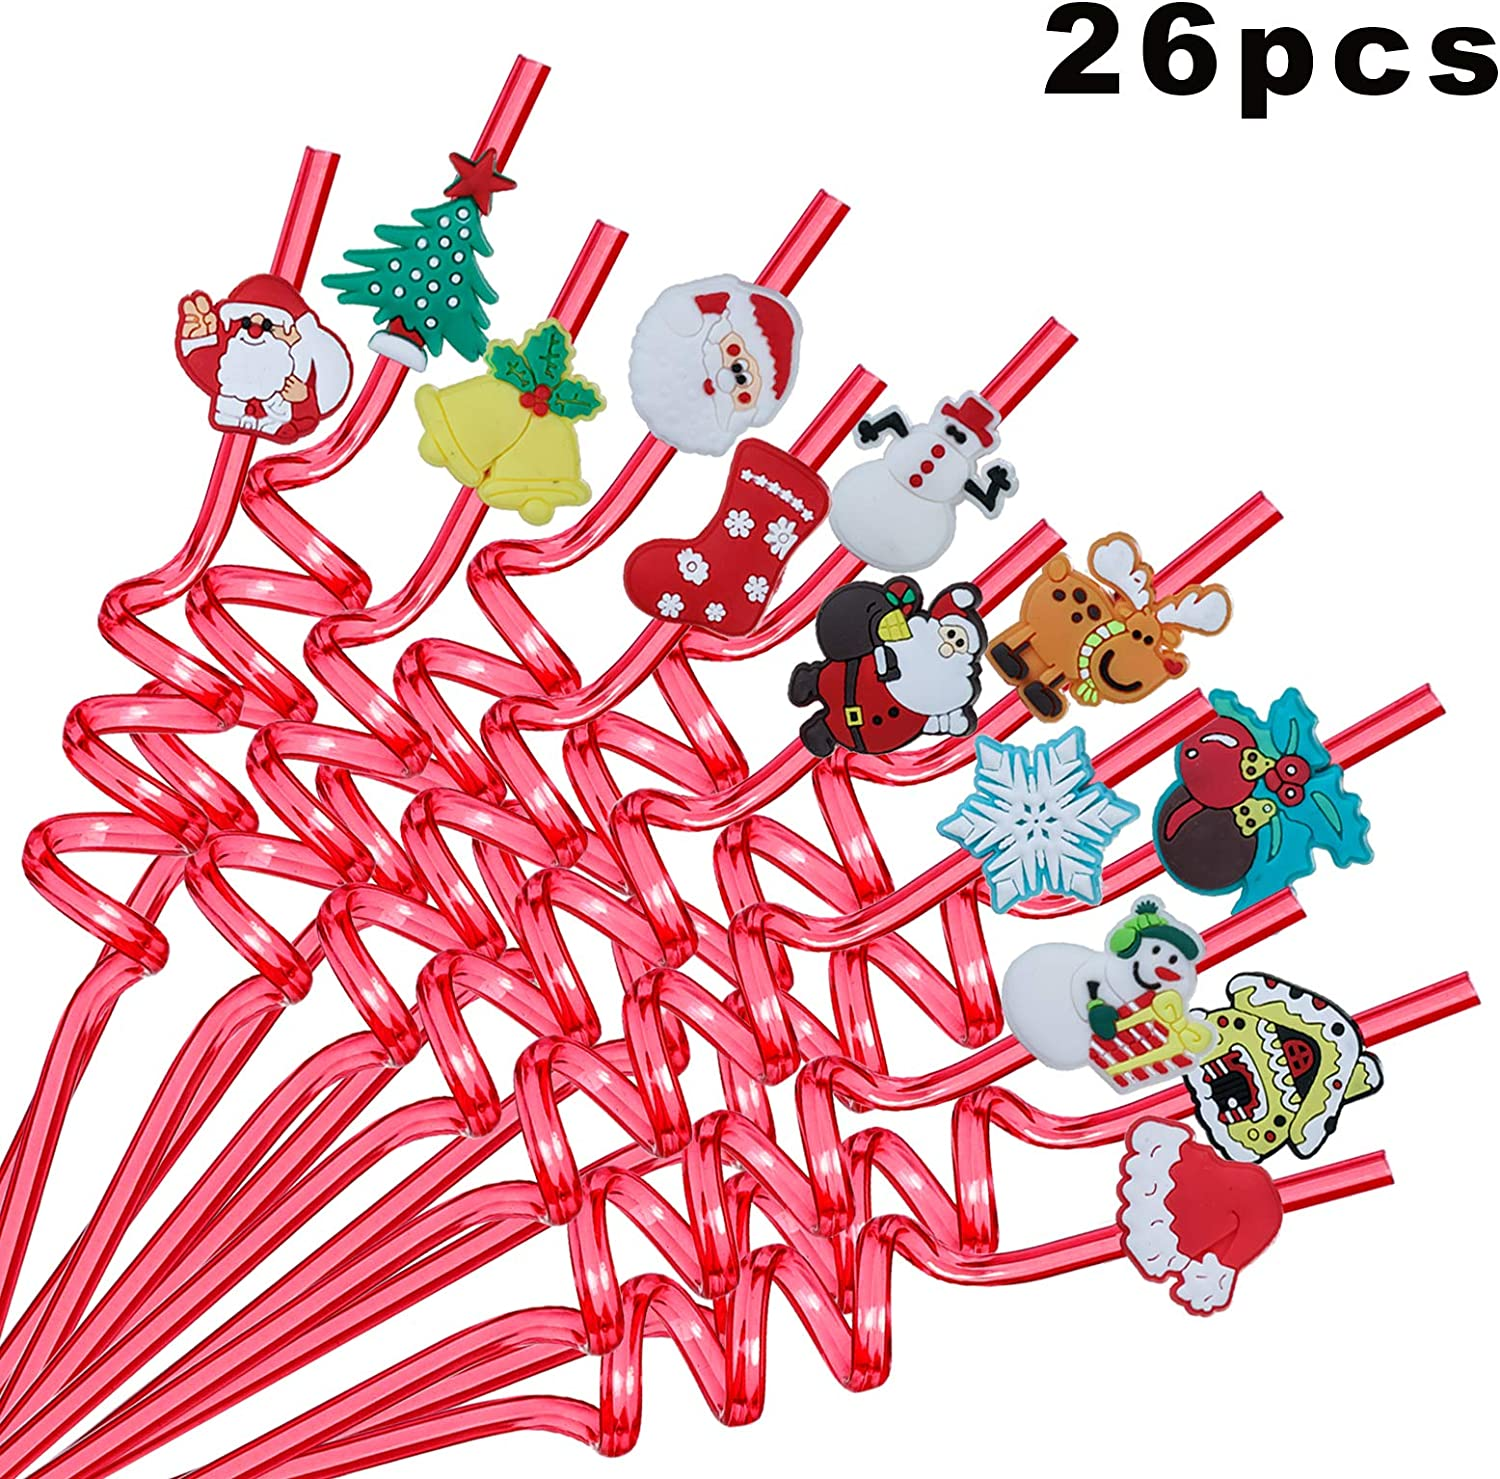 ALBABE Christmas Party Supplies 26pcs Drinking Plastic Straws Reusable 2 Cleaning Brush 50pcs Christmas Stickers Party Supplies